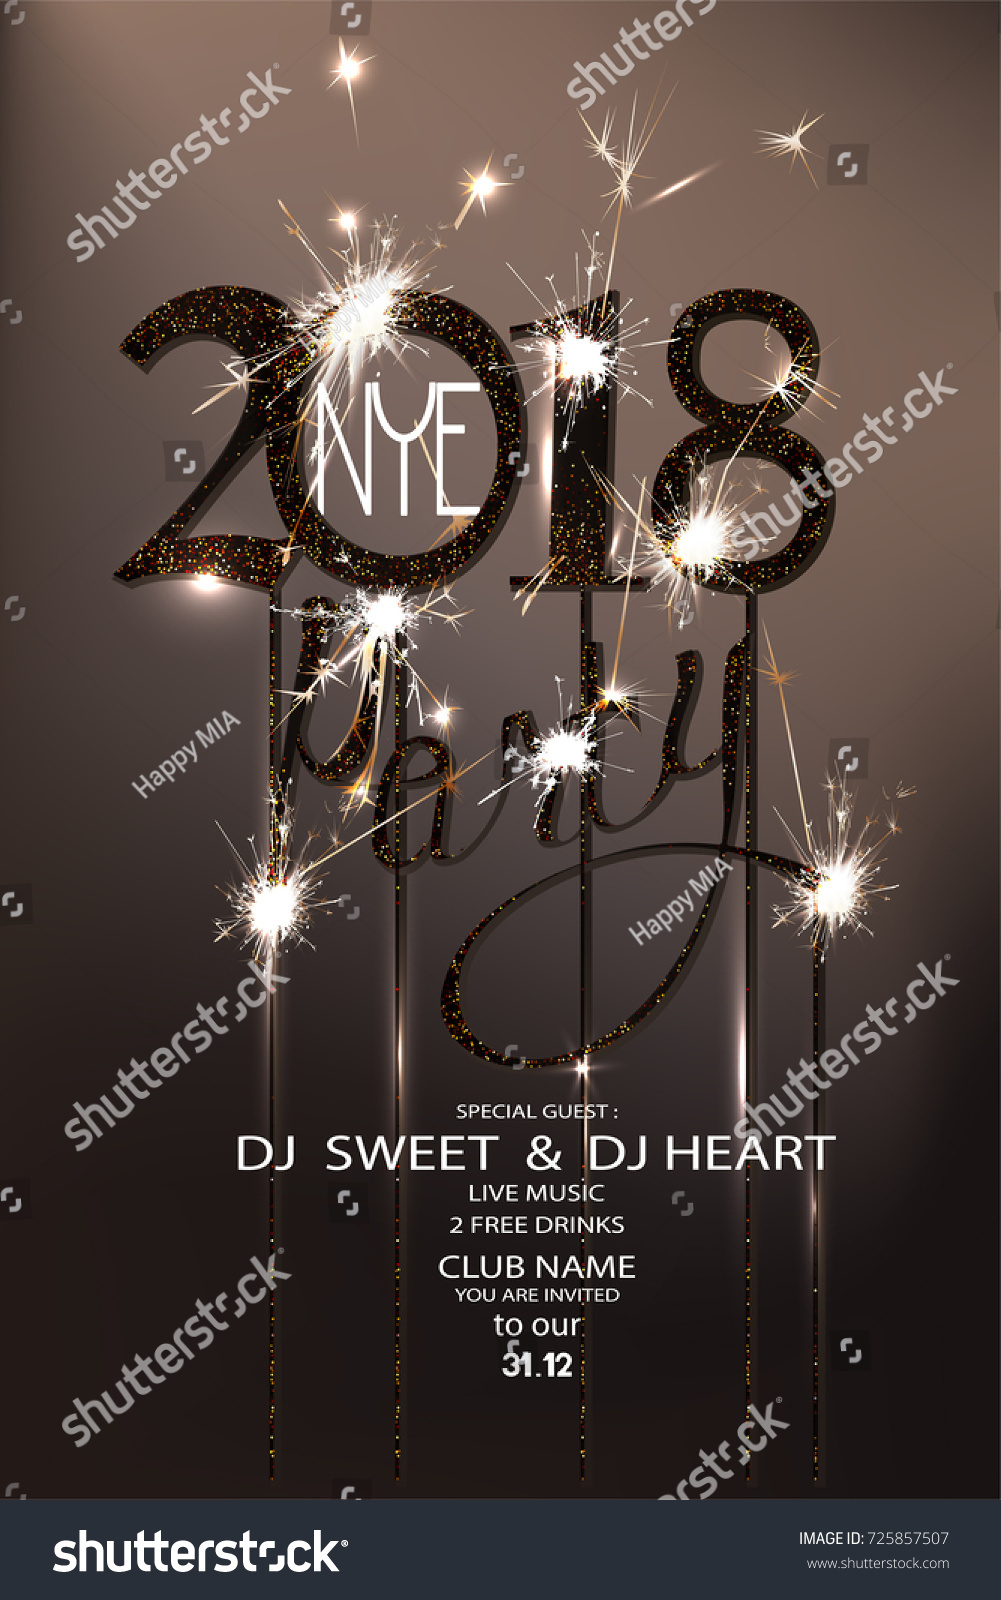 new year eve 2018 party invitation card with sparklers and serpentine vector illustration